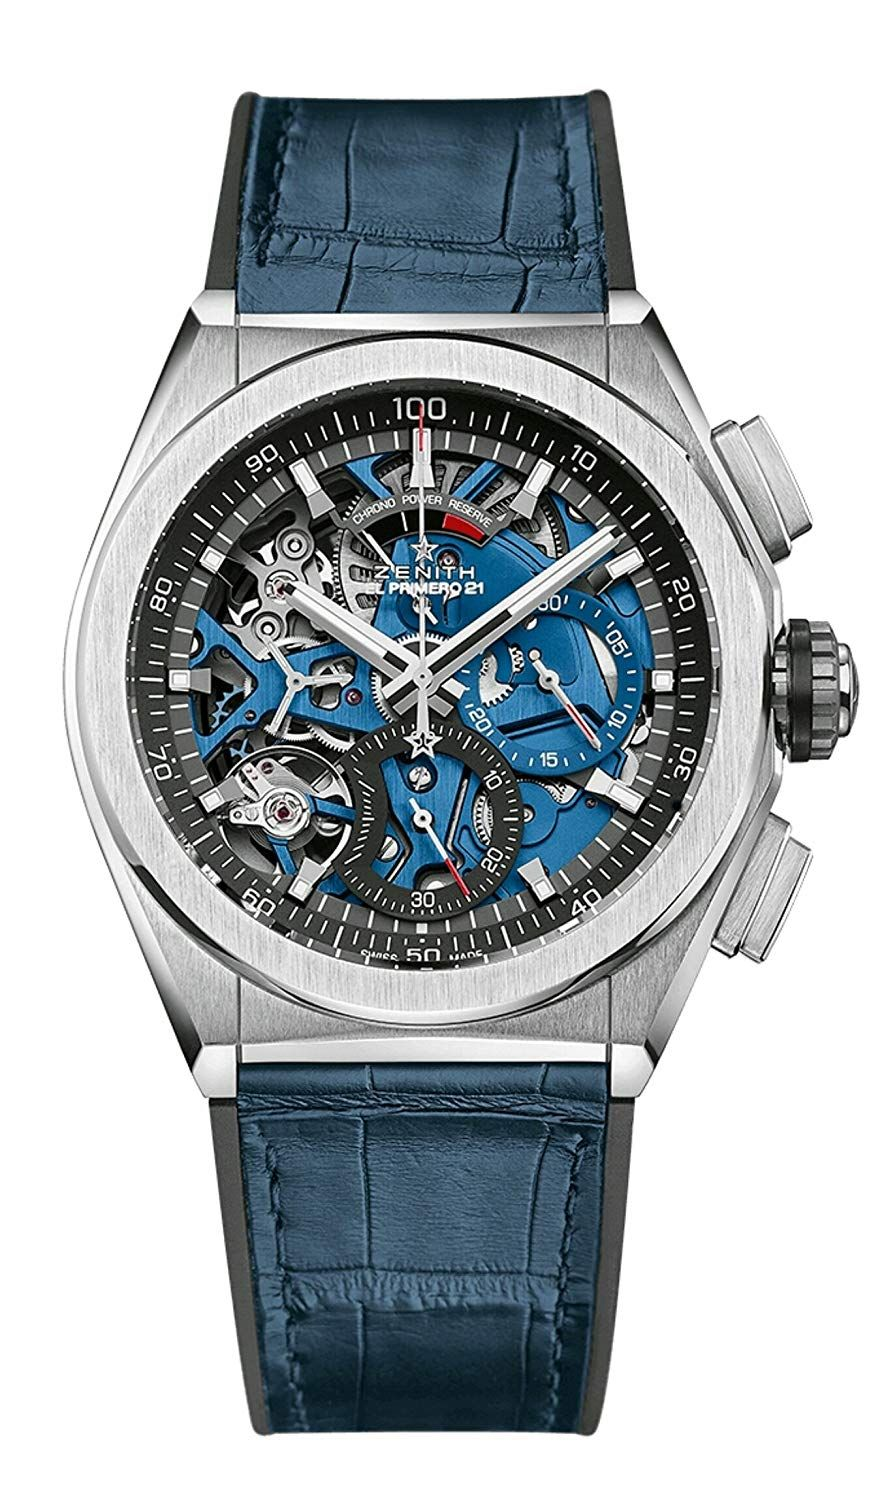 Zenith Mens Defy El Primero 21 44mm Titanium Skeleton Blue Watch ... e5e656c758d